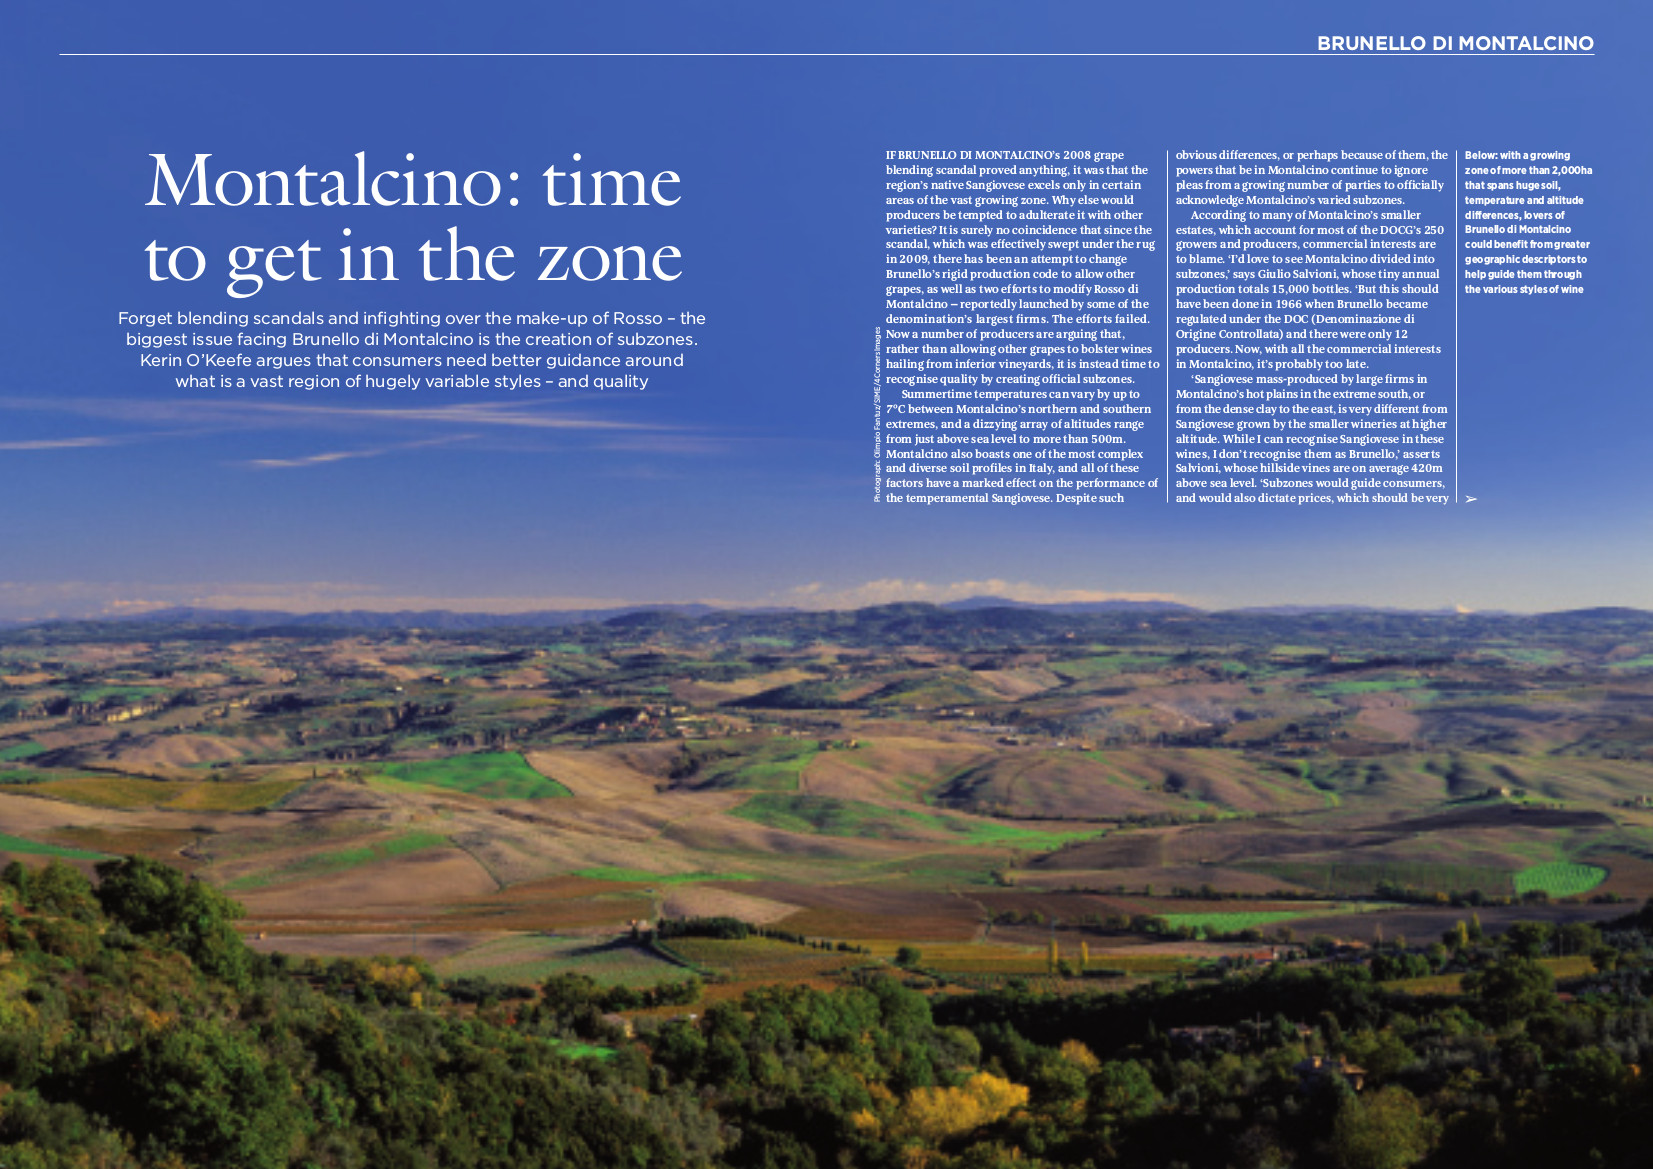 Montalcino: time to get in the zone